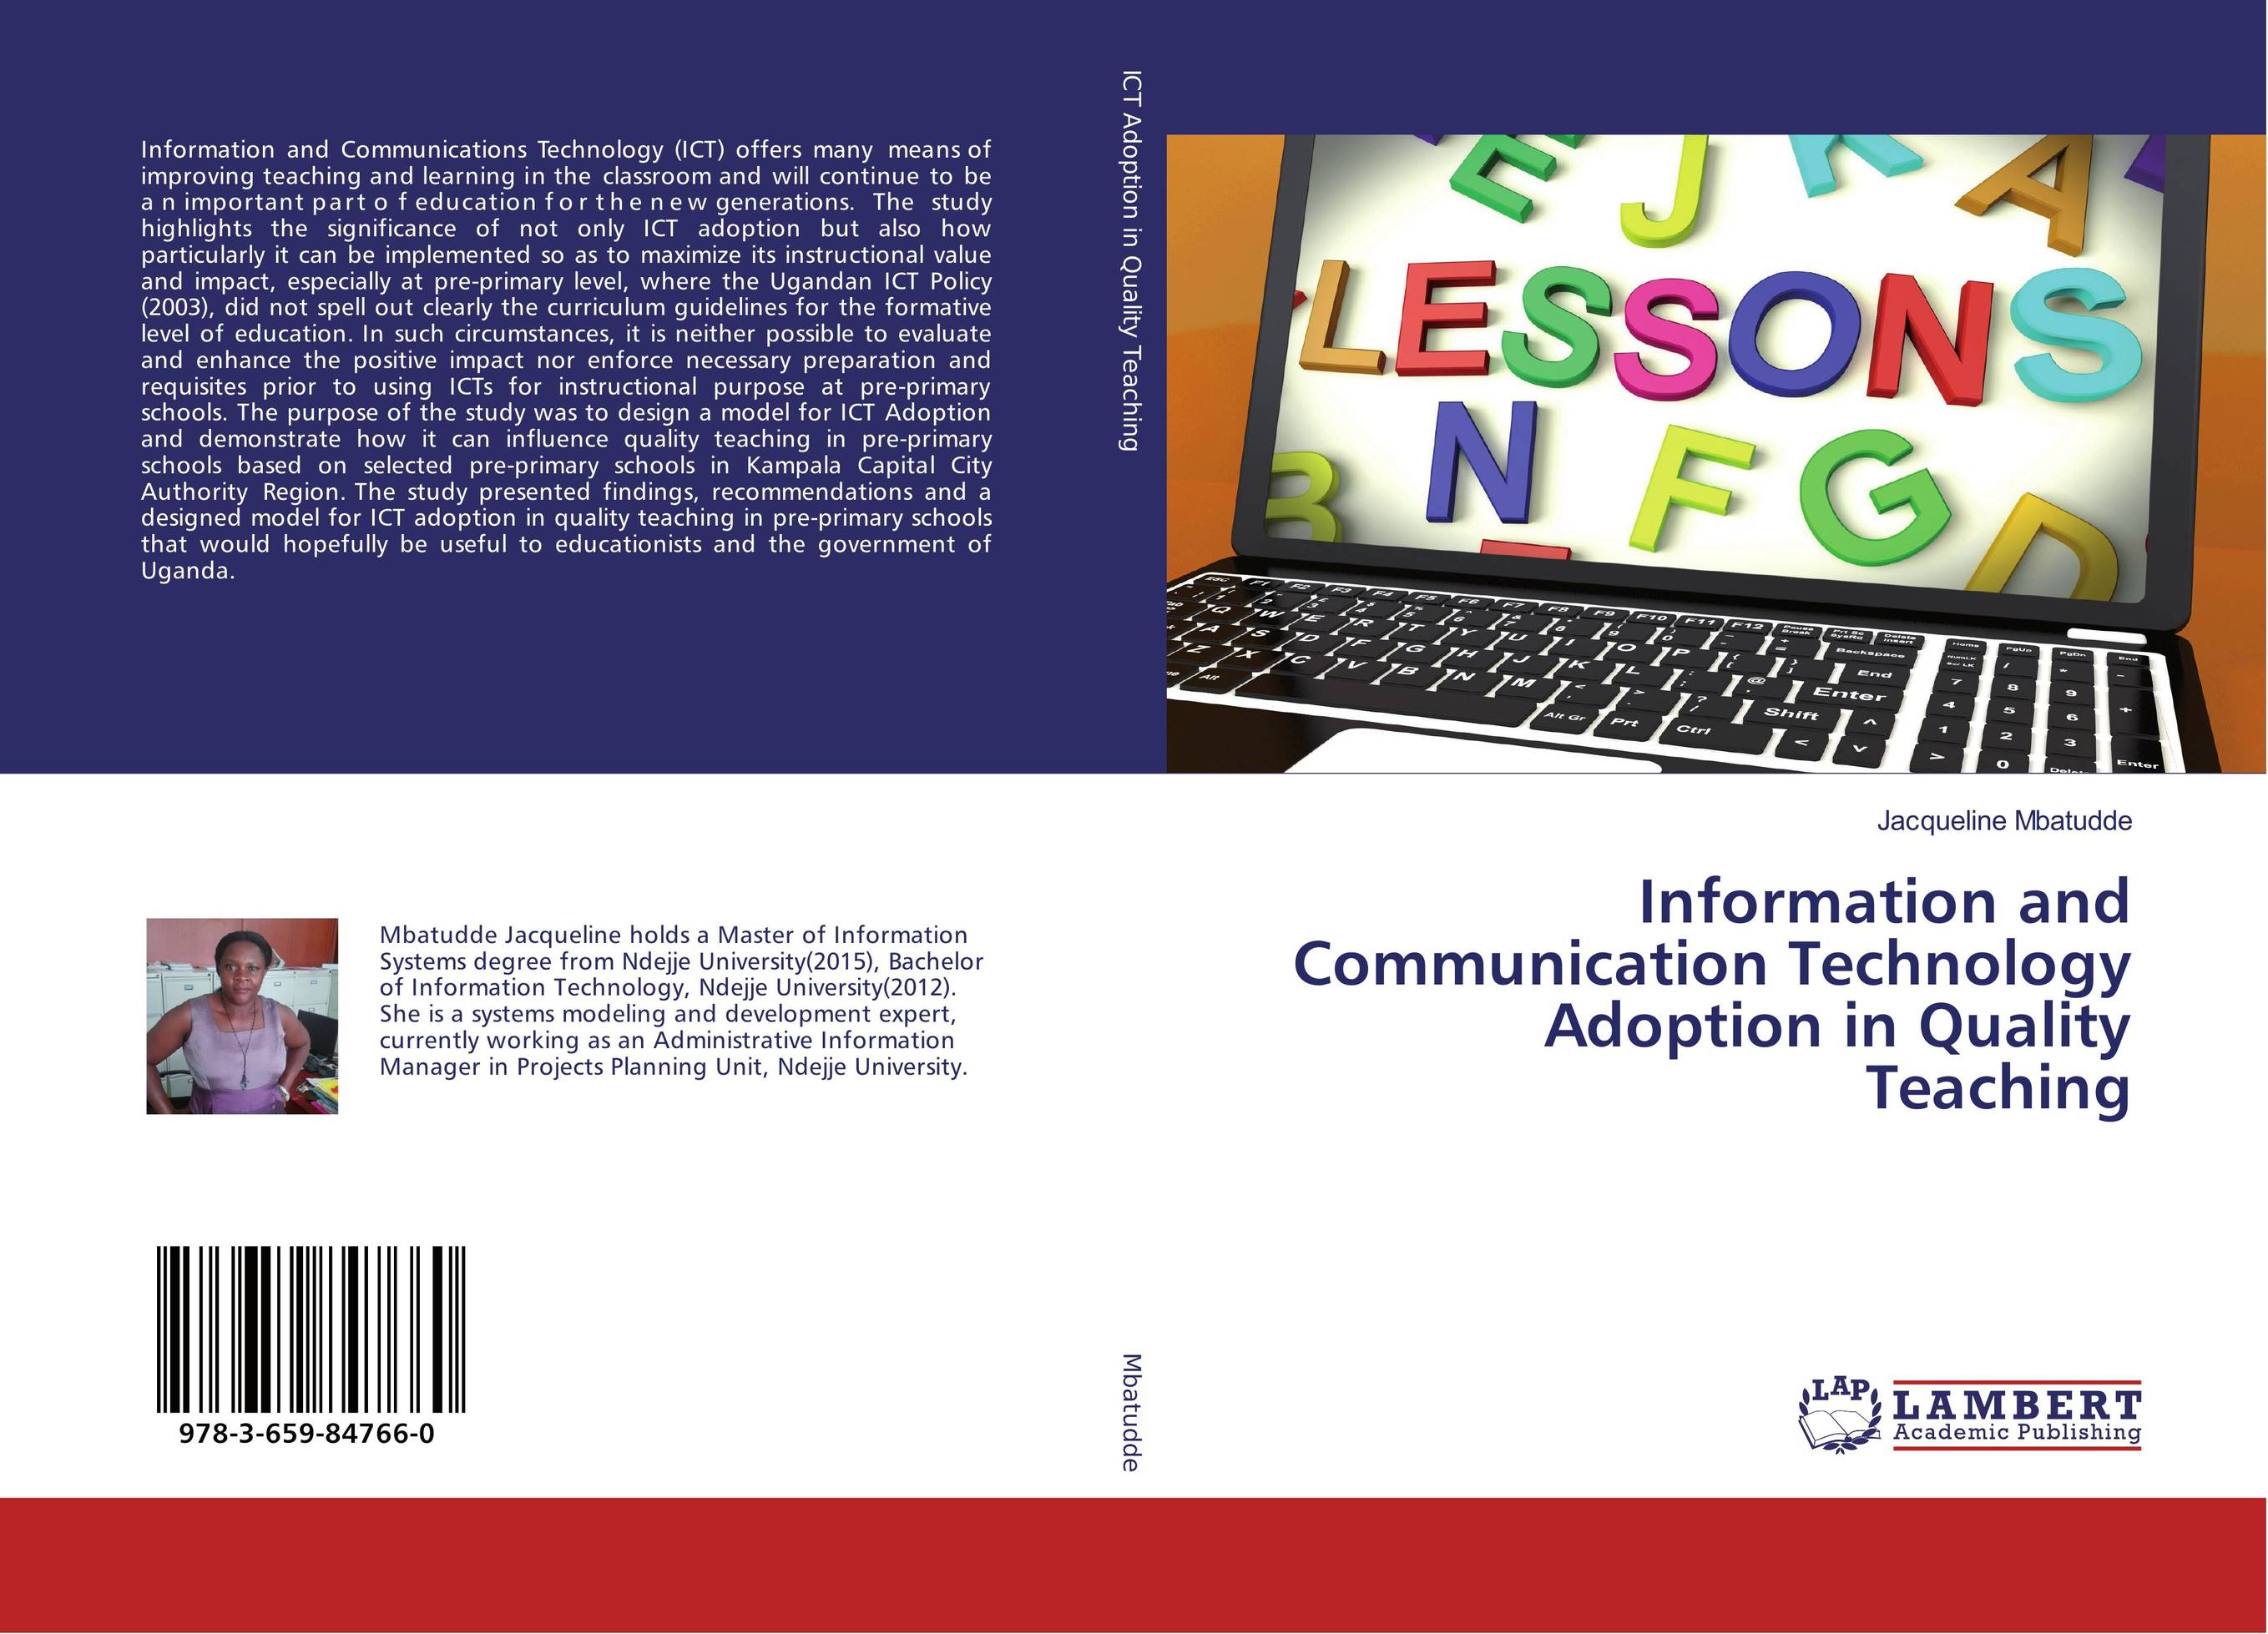 Information and Communication Technology Adoption in Quality Teaching use of role plays in teaching english in primary schools